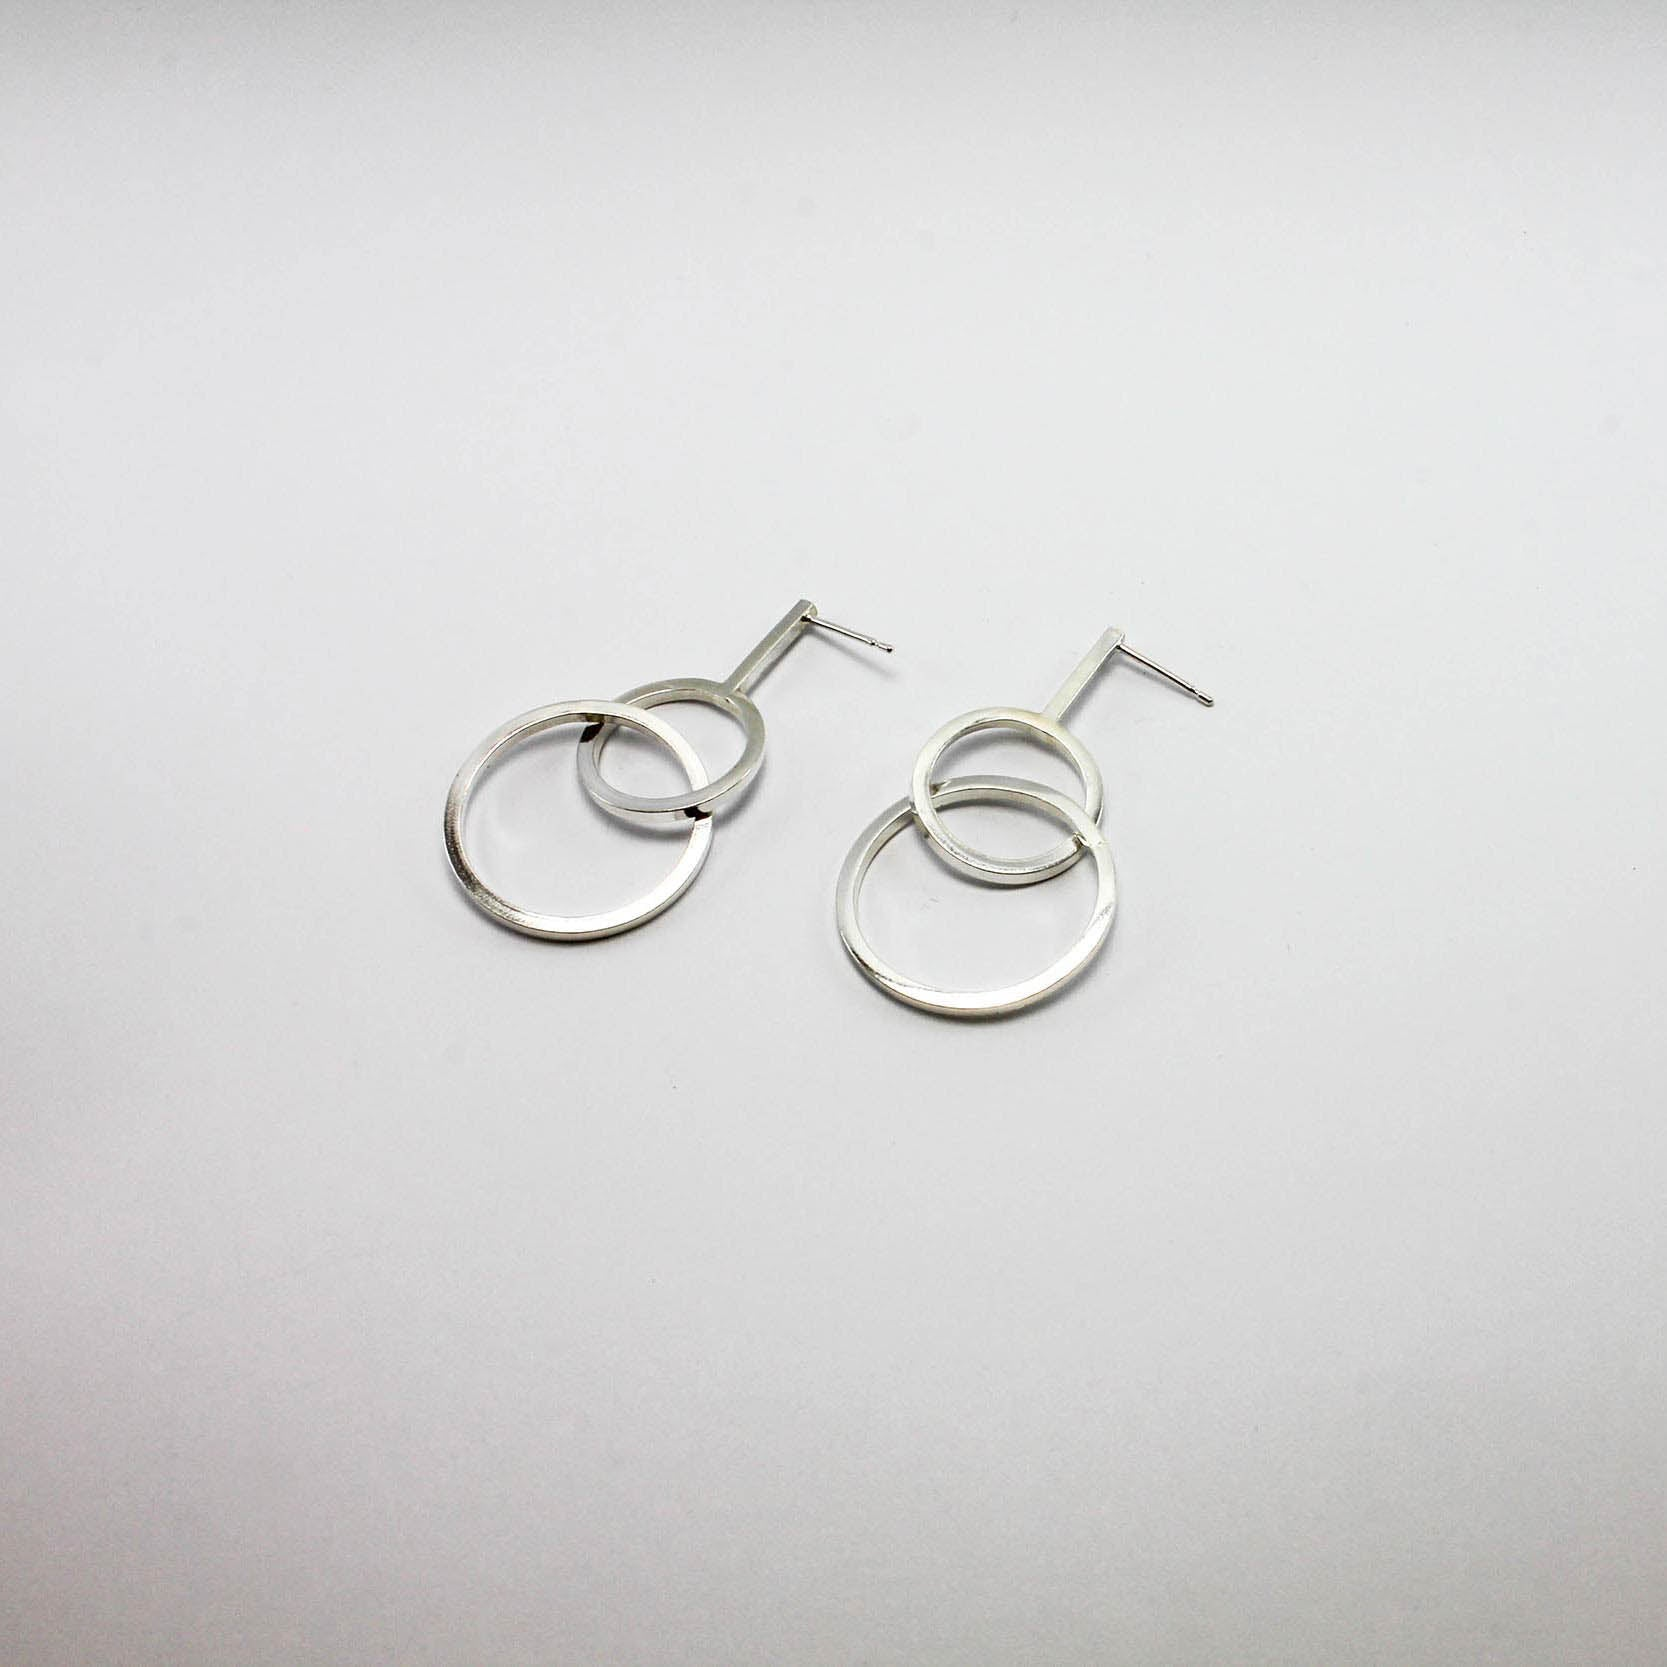 Deconstructed Radio Earrings